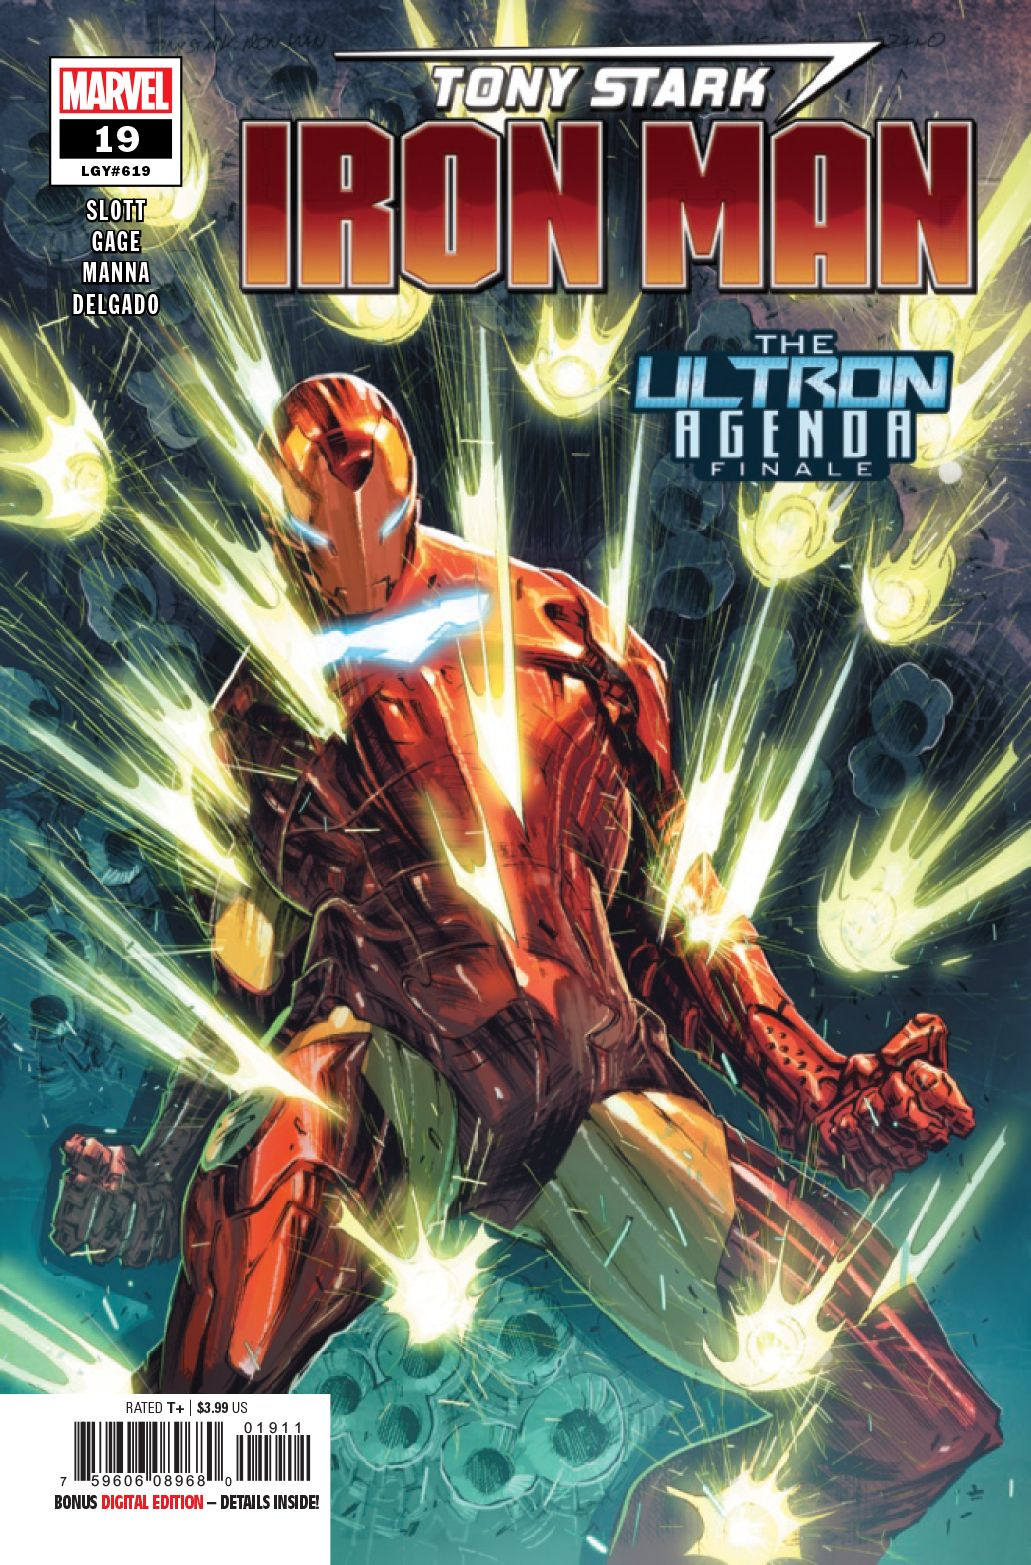 Tony Stark Iron Man 19 Marvel 2020 Nm Iron Man Comic Art Tony Stark Comic Iron Man Comic